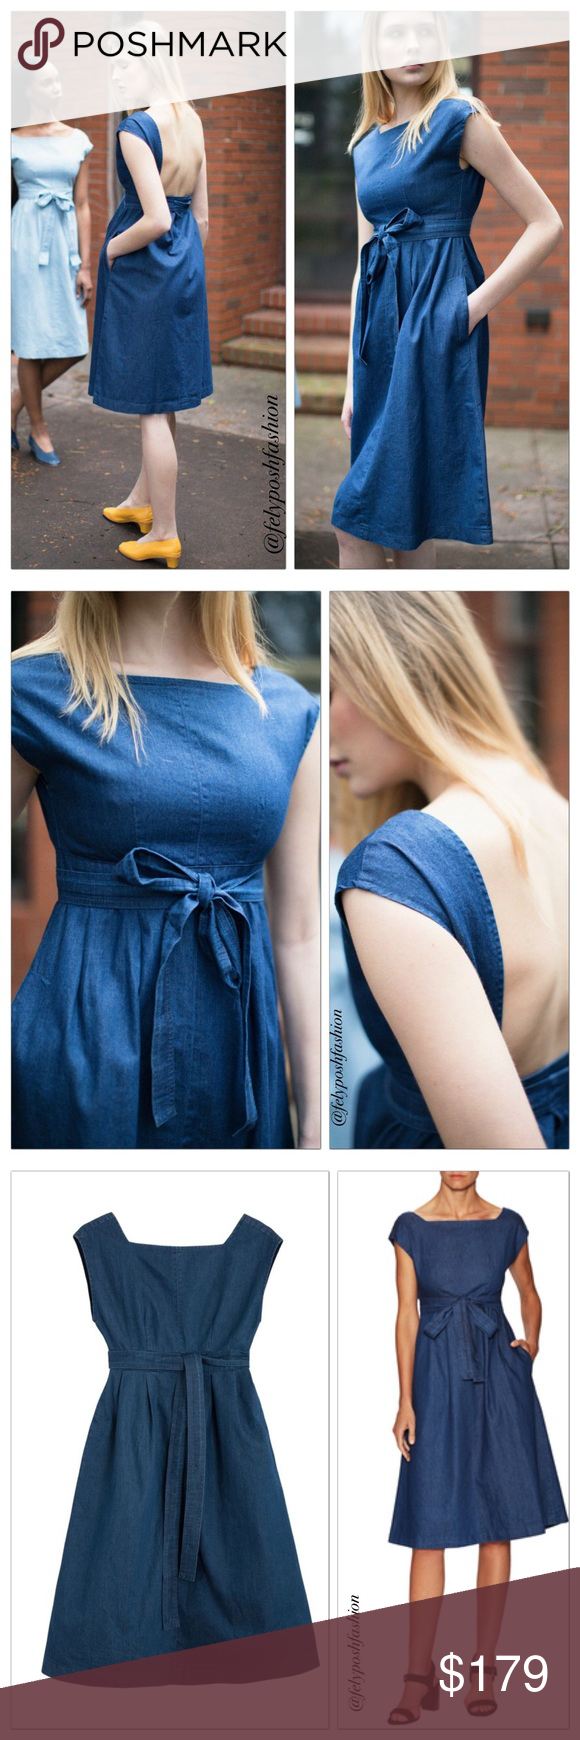 """Urban Outfitters Courtshop Denim Anita Midi Dress Urban Outfitters Courtshop Denim Anita Midi Dress Charming chambray midi dress from better-than-basic denim label Courtshop, the Anita dress features a fitted, backless sheath bodice + cinched tie-waist. Fit with mid-length A-line skirt that tapers out for a classic feminine silhouette. Fully lined.Content + Care- Cotton- Machine wash- Imported Size + Fit- Model is wearing size Small- Measurements taken from size Medium- Chest: 32""""- Length…"""